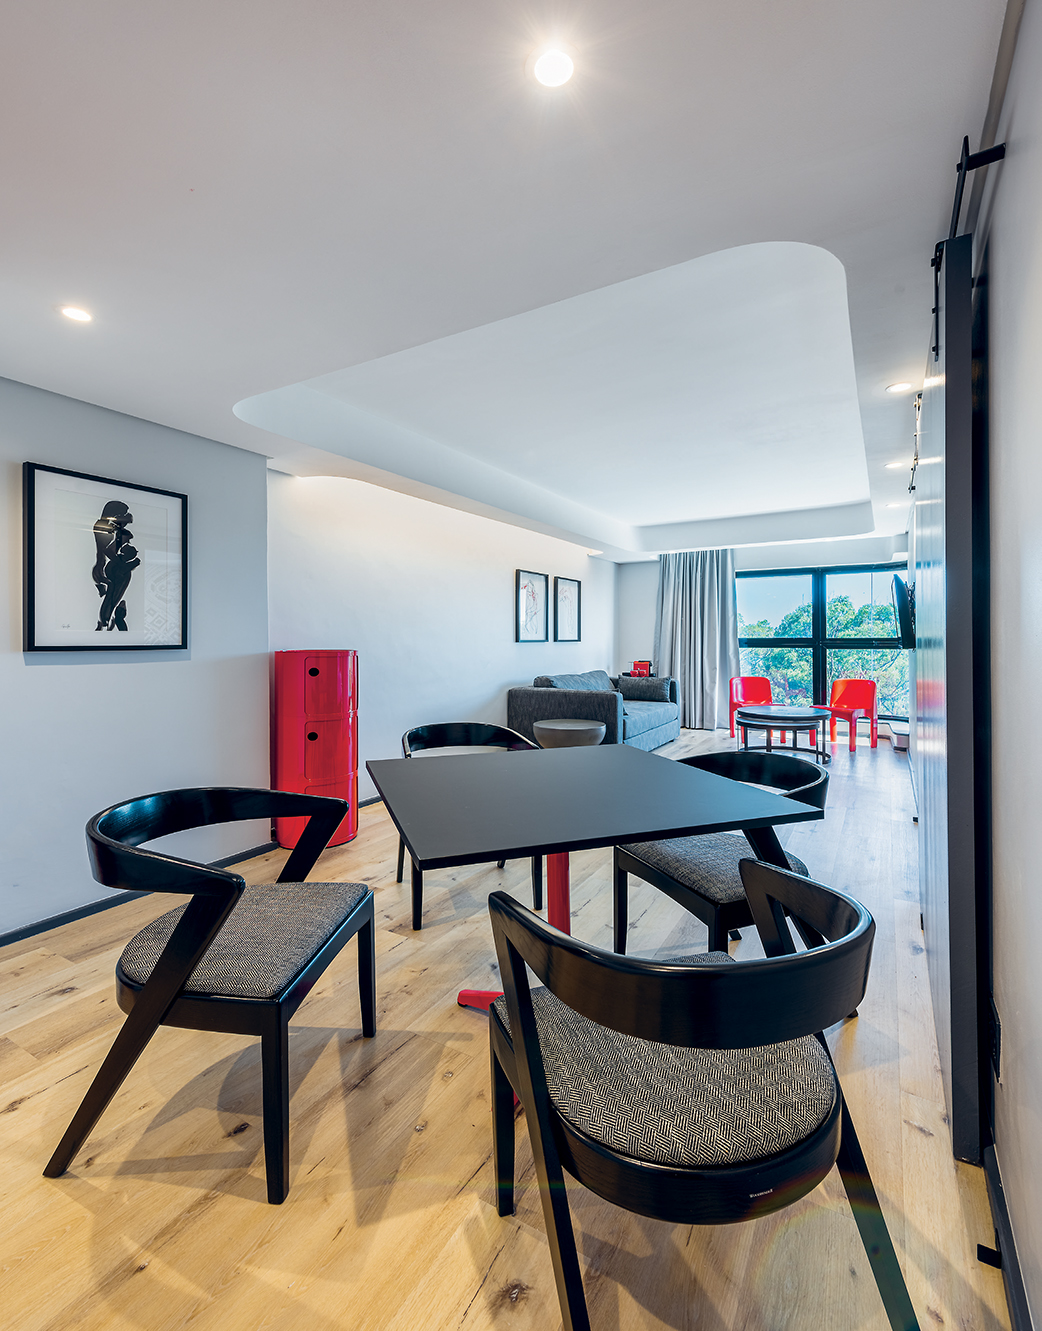 The roomy suite includes a dining area, furnished courtesy of Woodbender and Tabletops, as well as a sleeper couch by Sofaworx, vintage red Kartell stacking chairs sourced from Ride A White Swan, a glossy red storage canister by Chair Crazy, and original artworks by Shafina Jaffer.